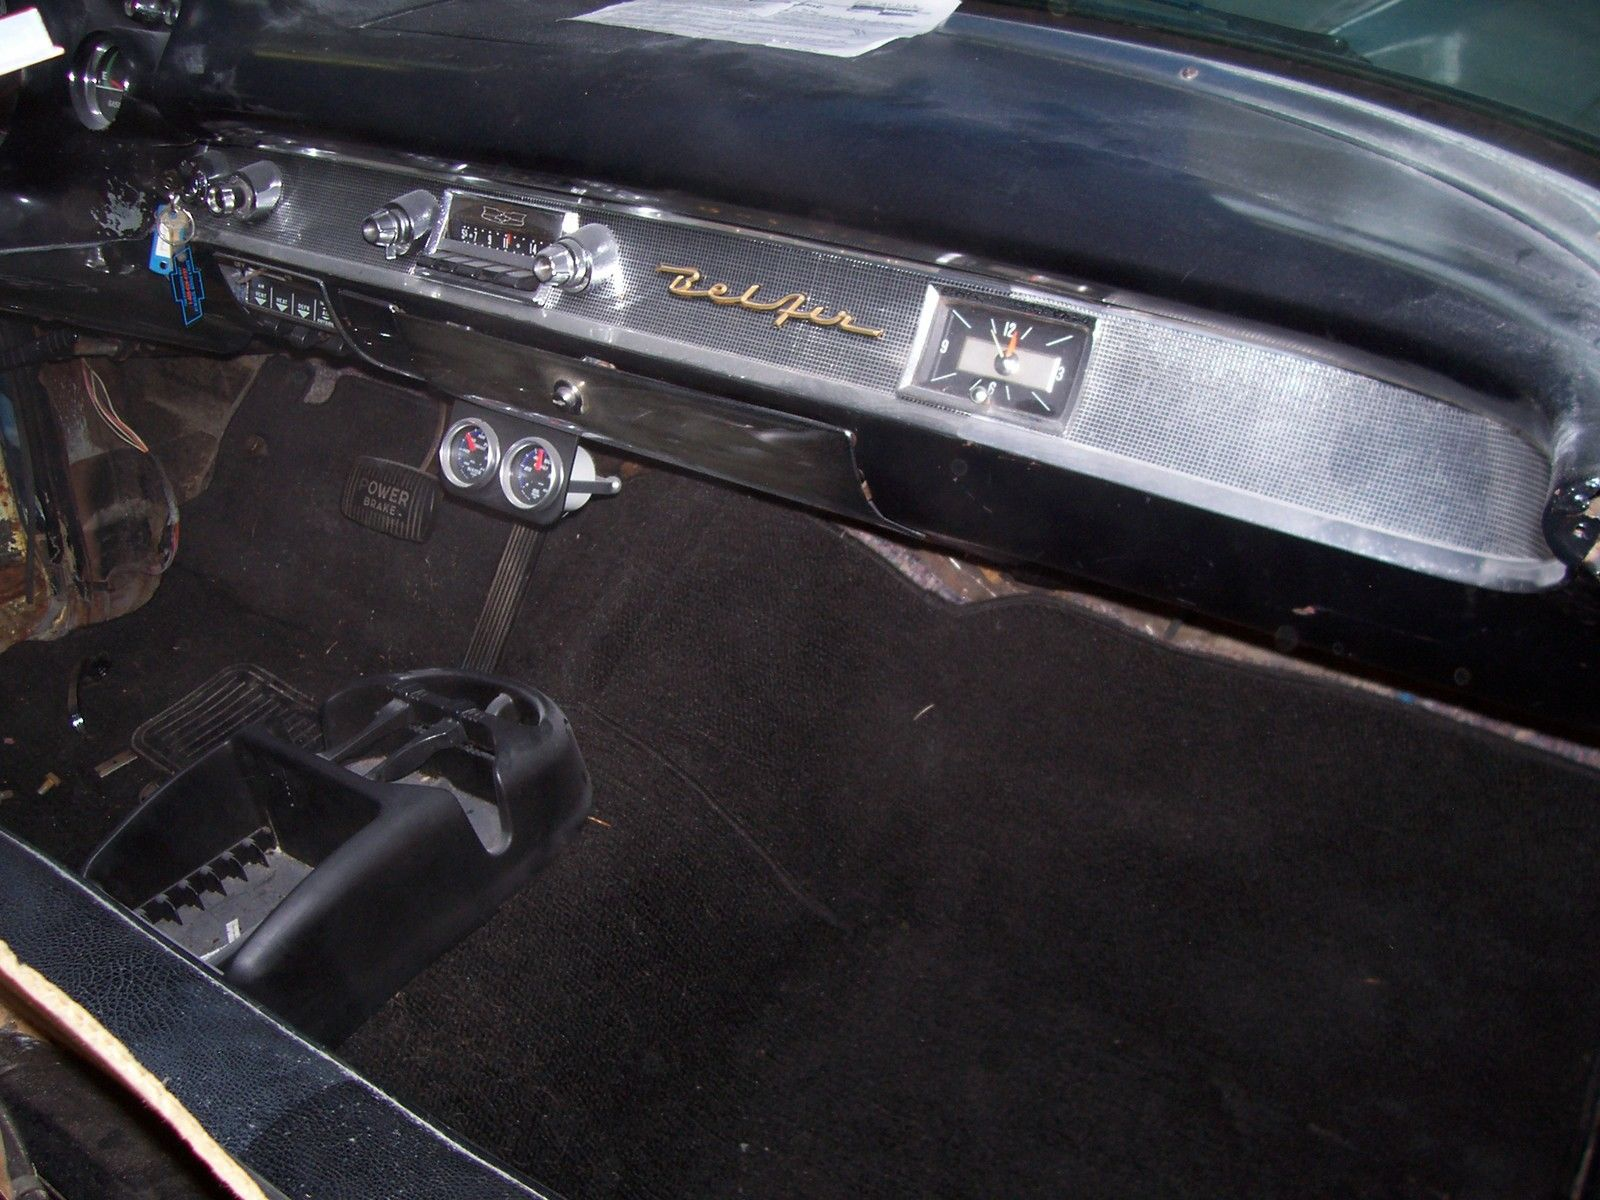 1957 Chevy Belair Nomad Wagon Project V 8 Auto Runs And Drives Bel Air Prevnext